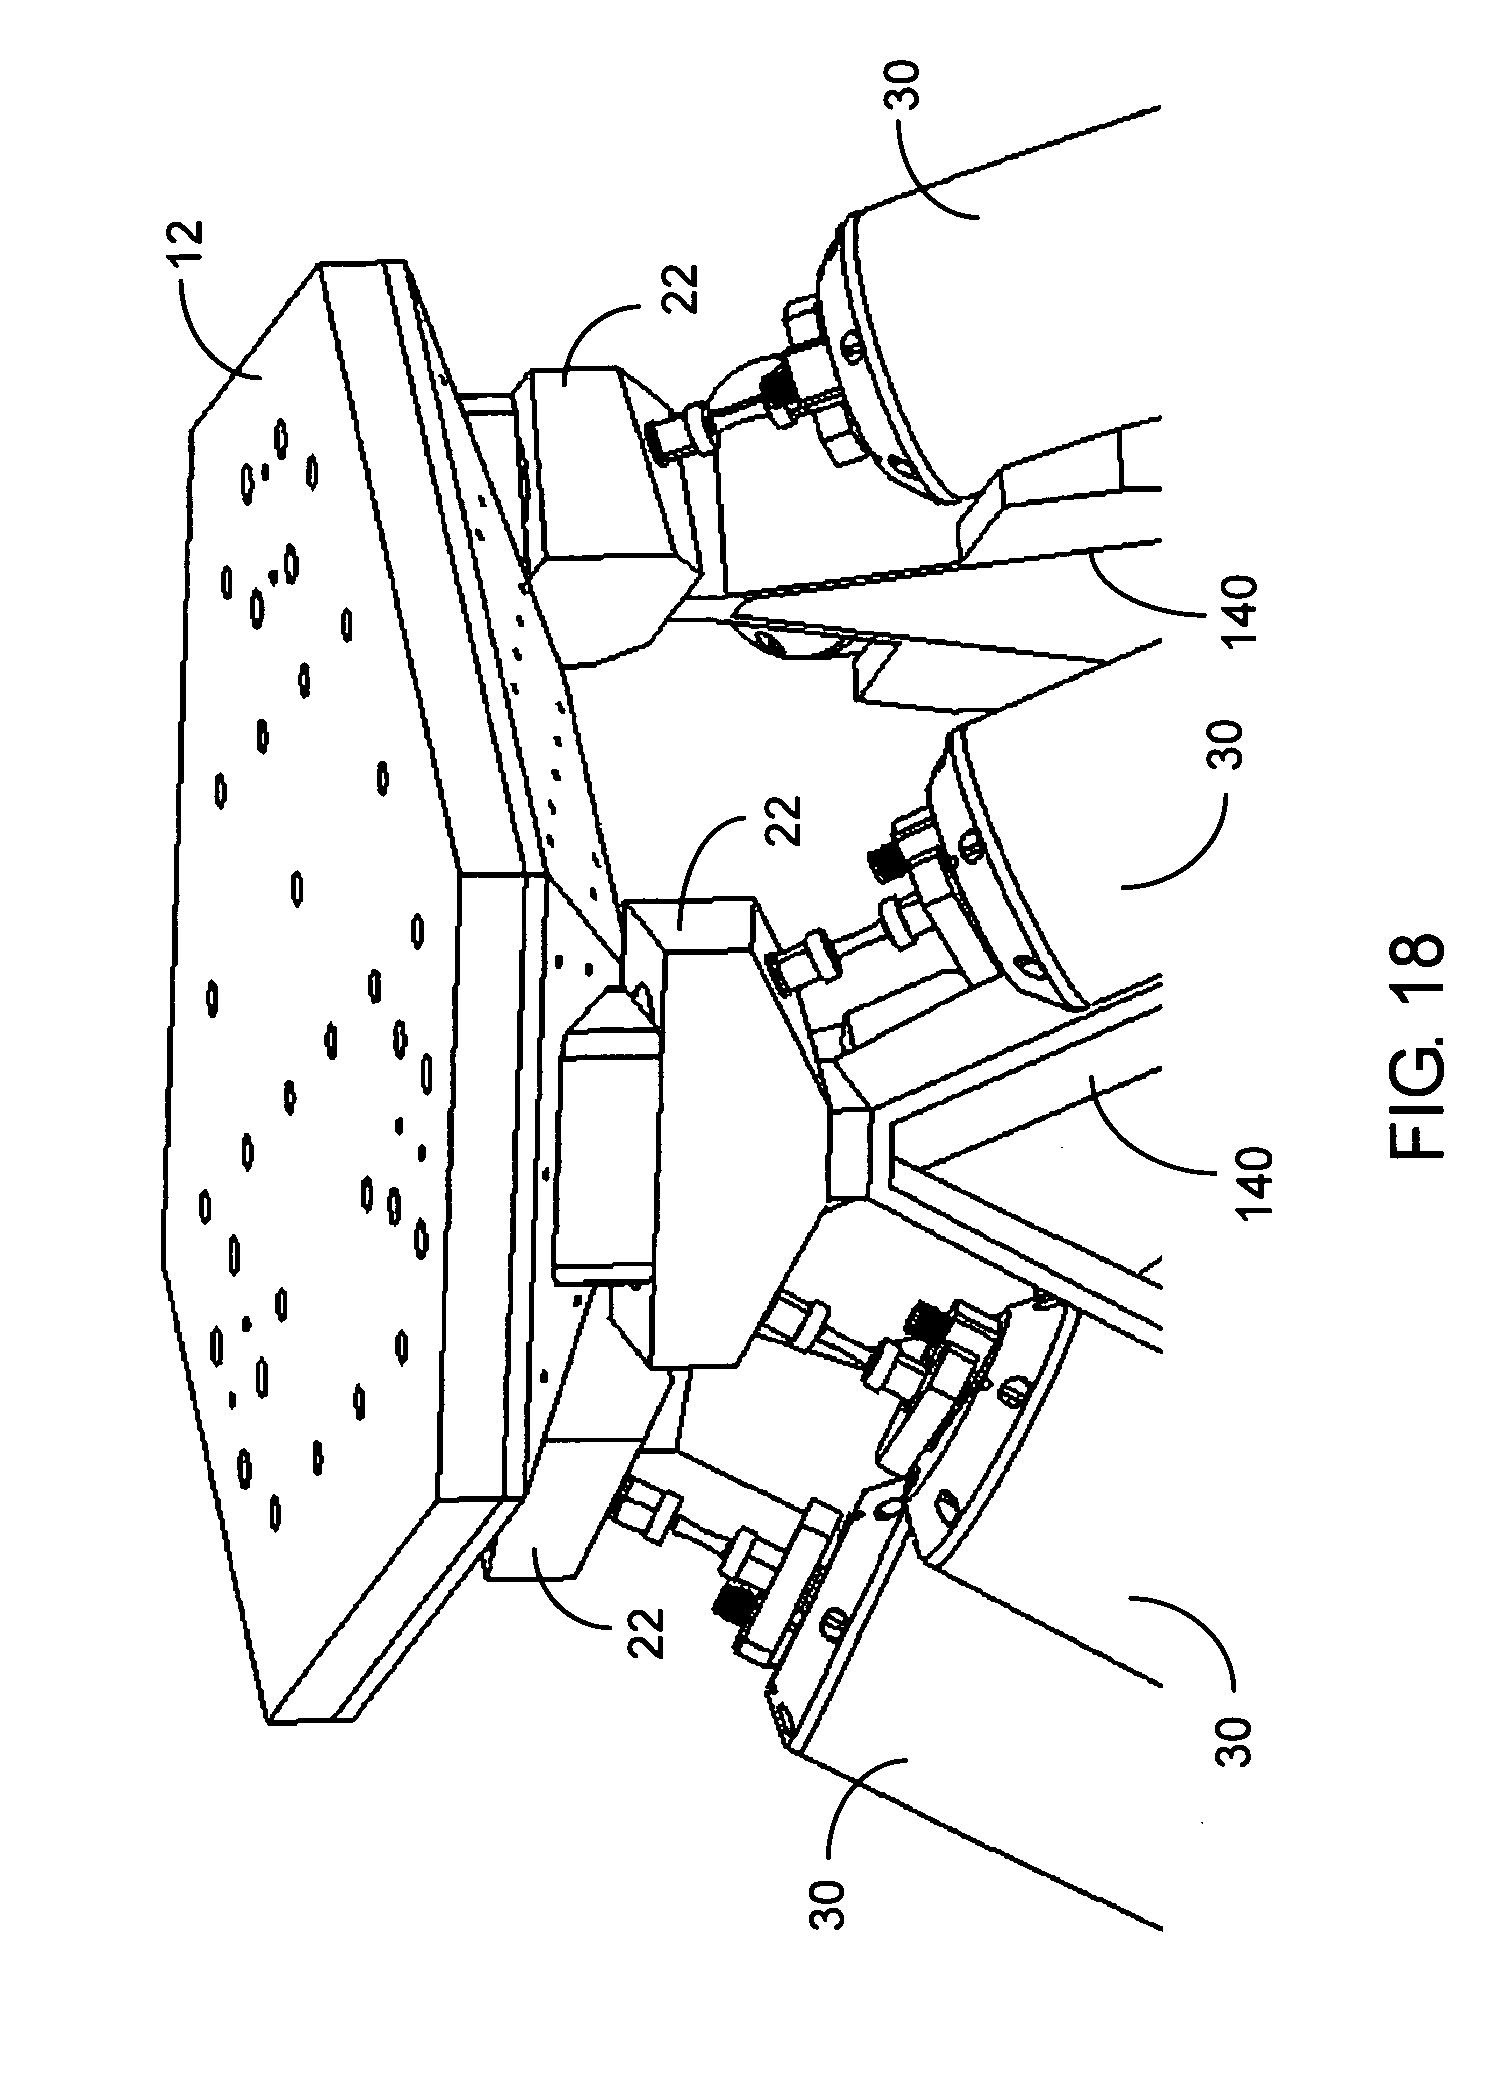 Patent Us8453512 High Frequency Hexapod Six Degree Of Freedom Drive System Diagram Parts List For Model 604 Mtdparts Ridingmower Drawing